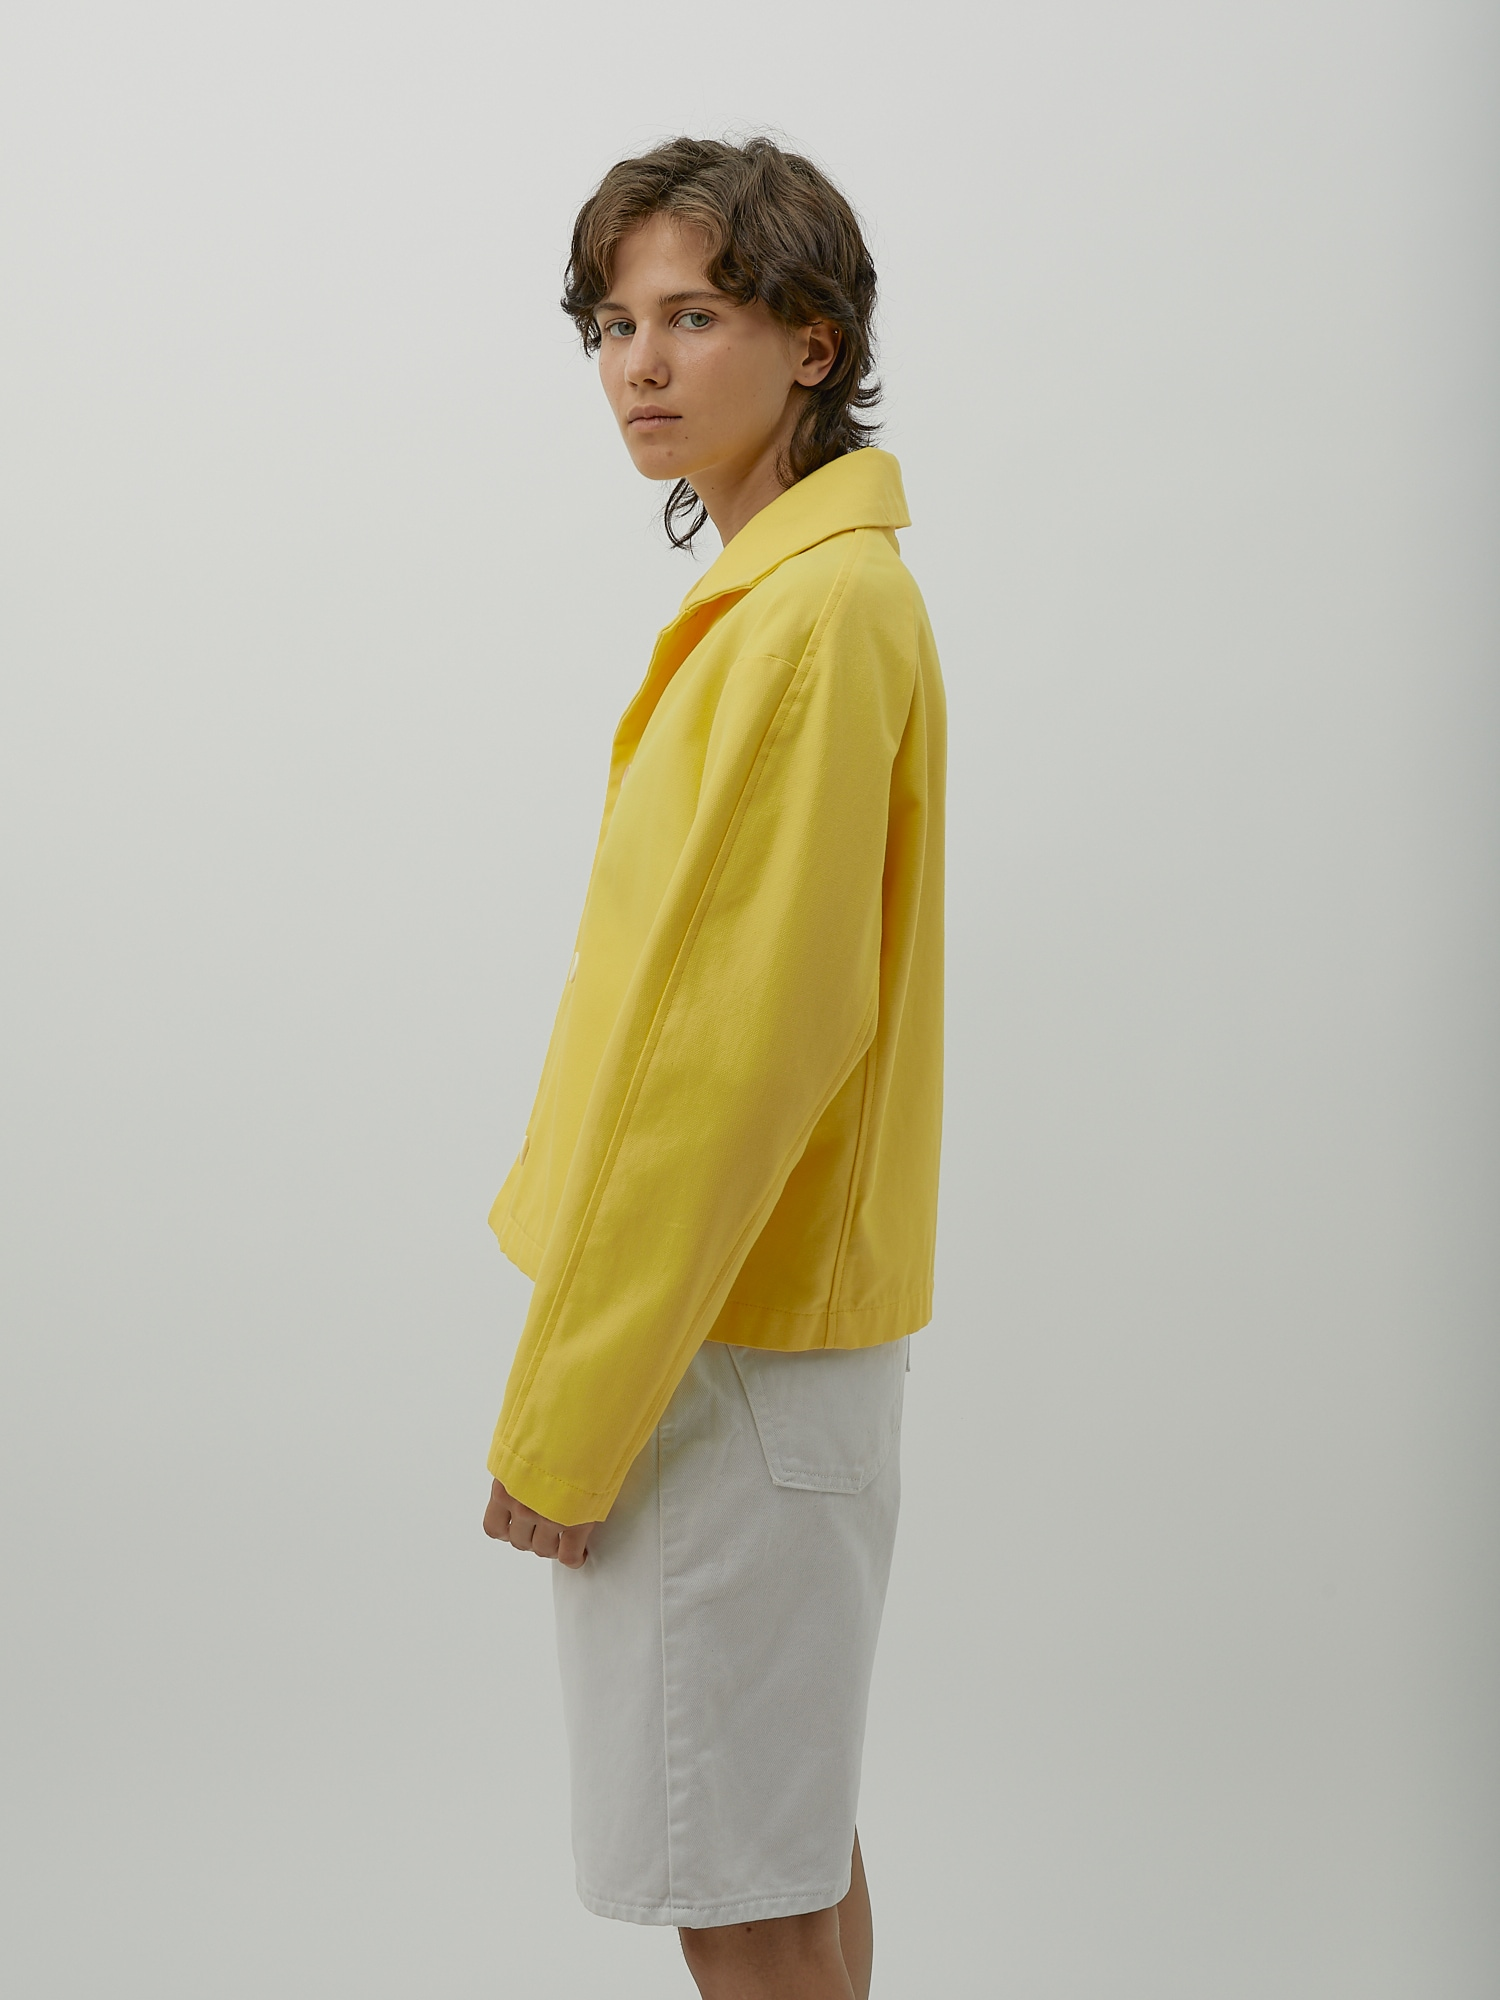 Duck Canvas Jacket Suitable For Year-Round Wear by One DNA